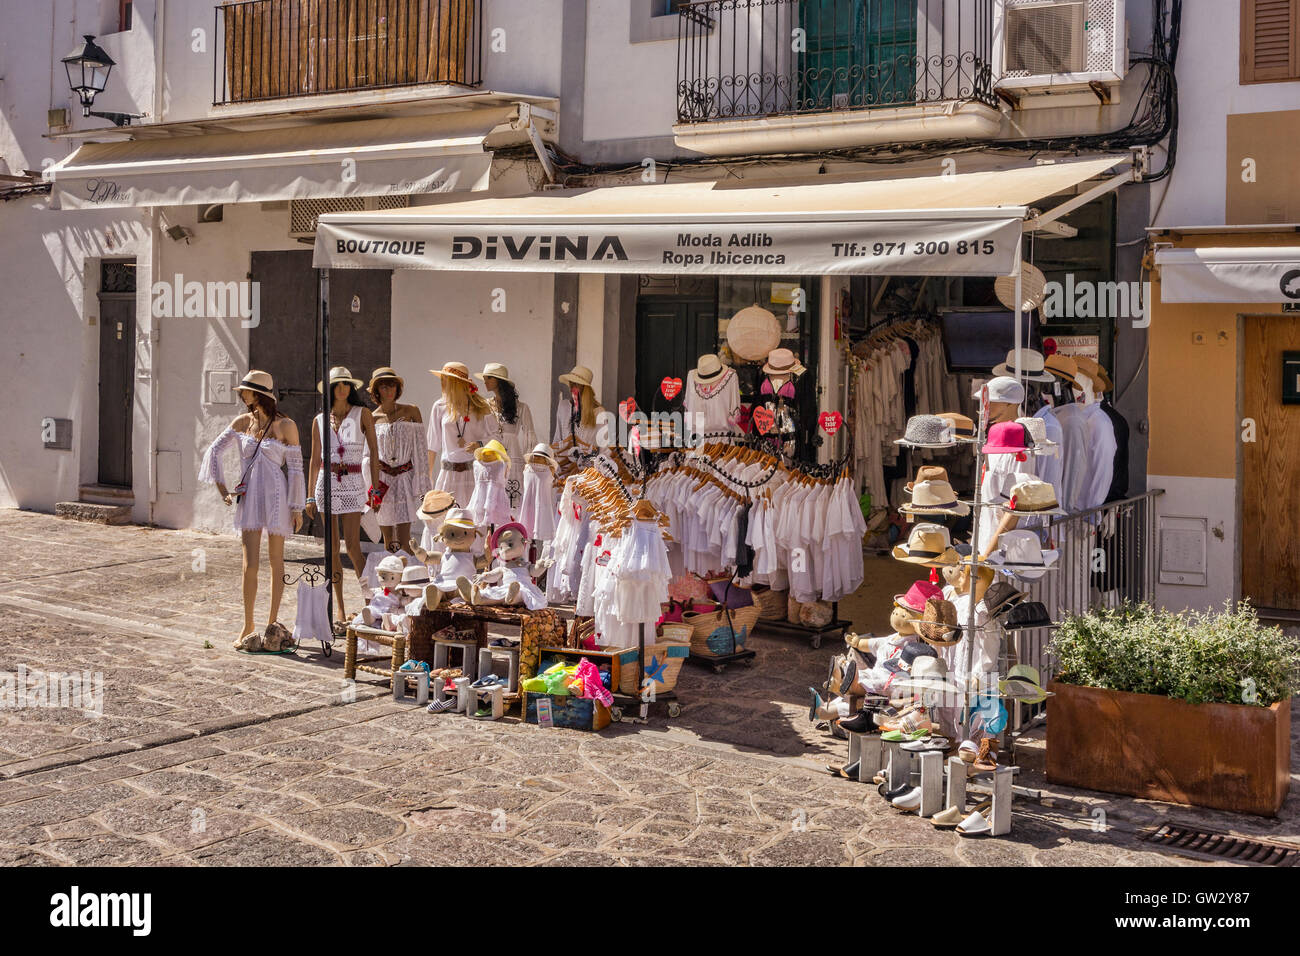 Divina boutique, selling womens and childrens clothing, in Ibiza Old Town, Ibiza, Spain. - Stock Image